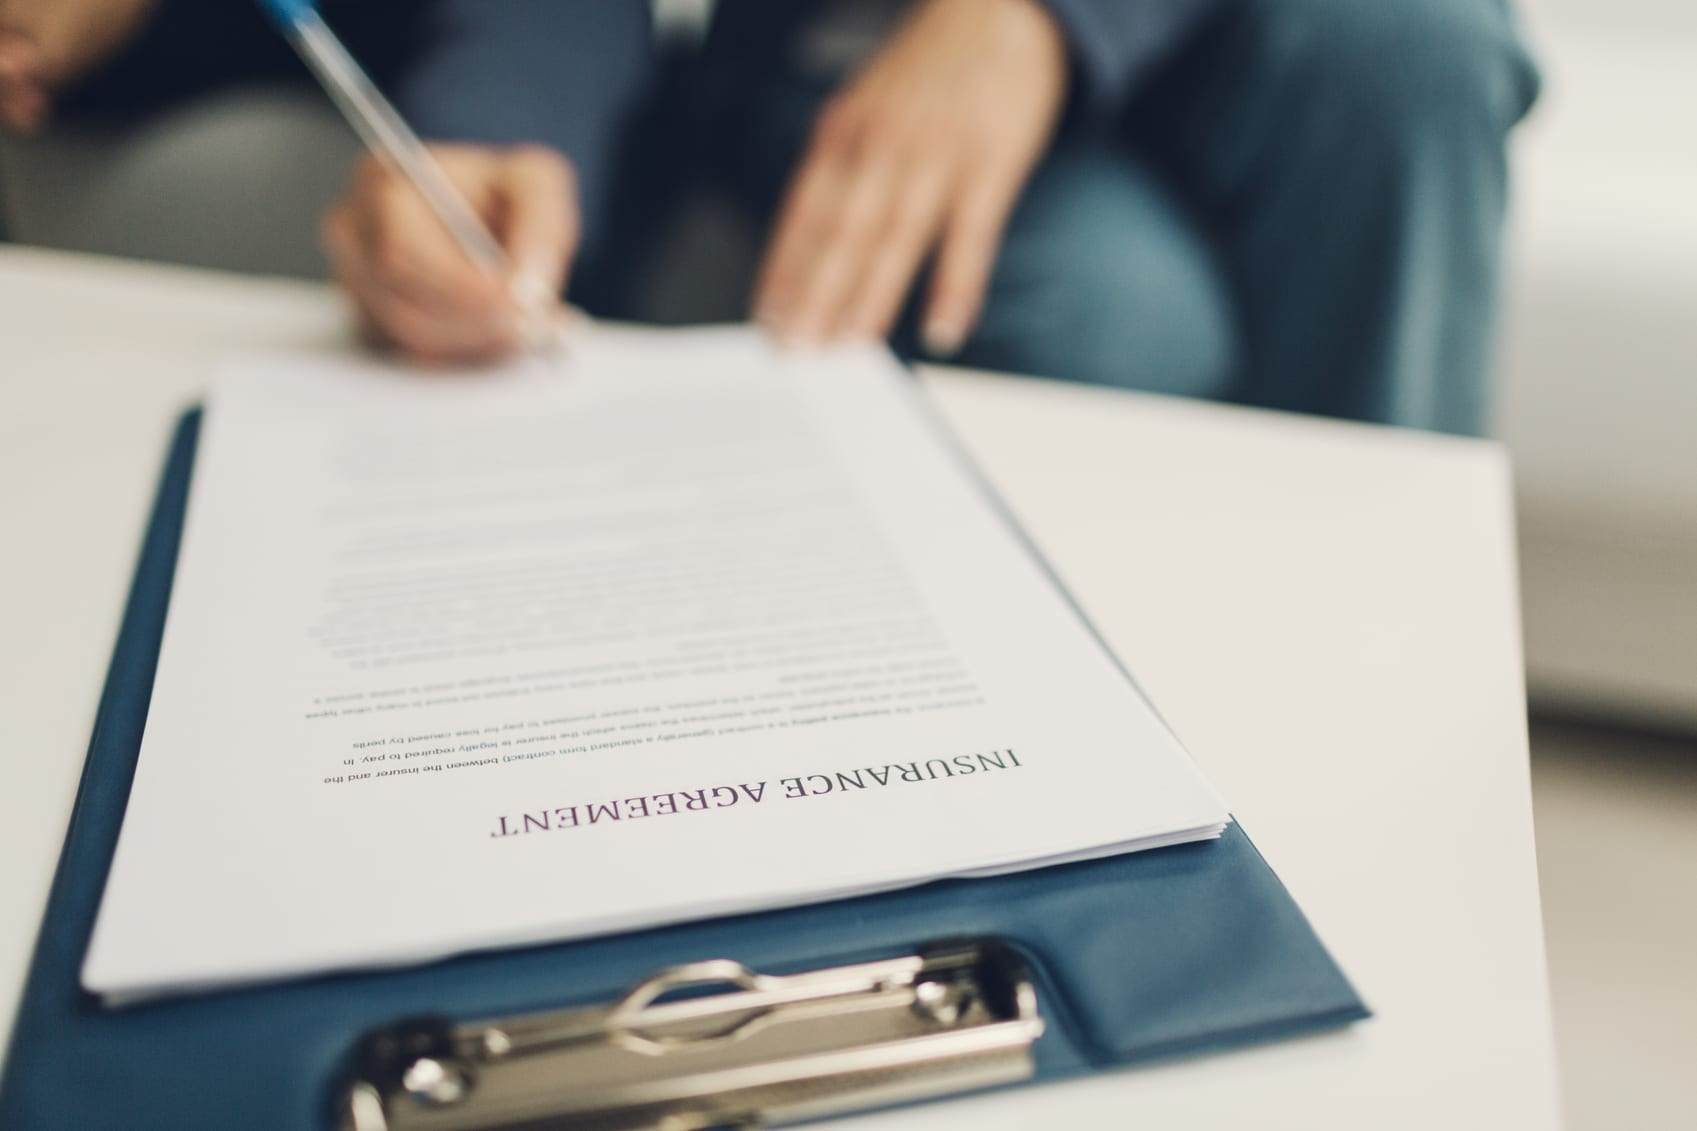 Insurance Agreement Form Stock Photo